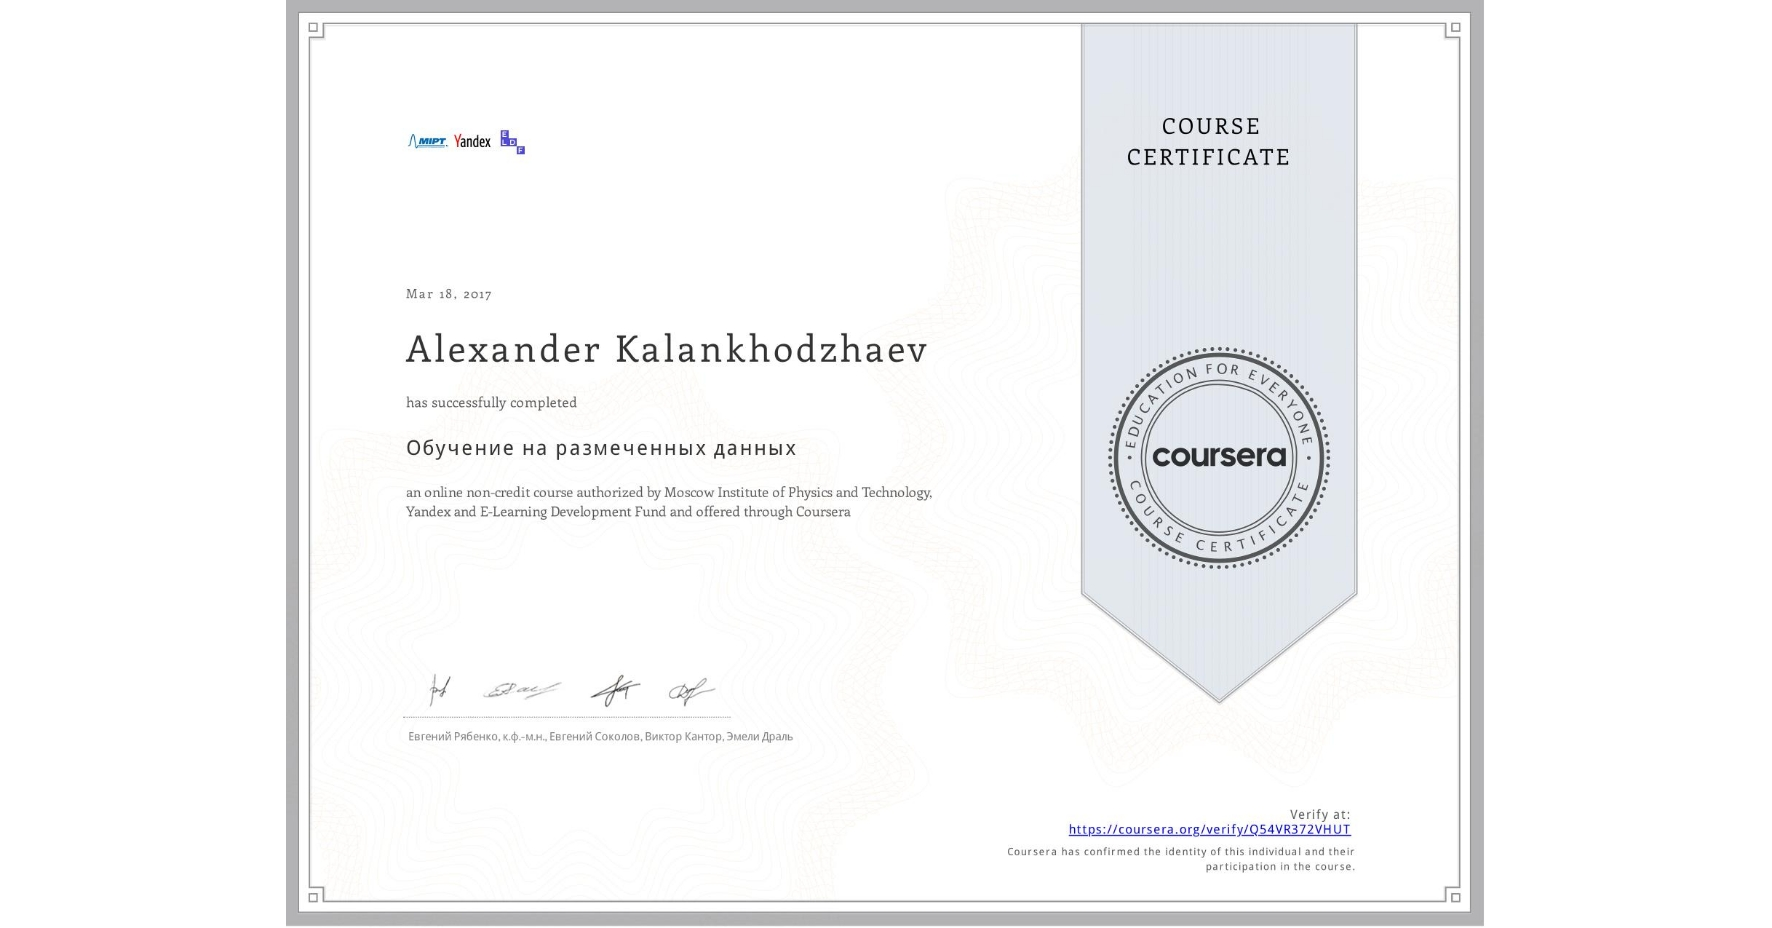 View certificate for Alexander Kalankhodzhaev, Обучение на размеченных данных, an online non-credit course authorized by Moscow Institute of Physics and Technology, Yandex & E-Learning Development Fund and offered through Coursera